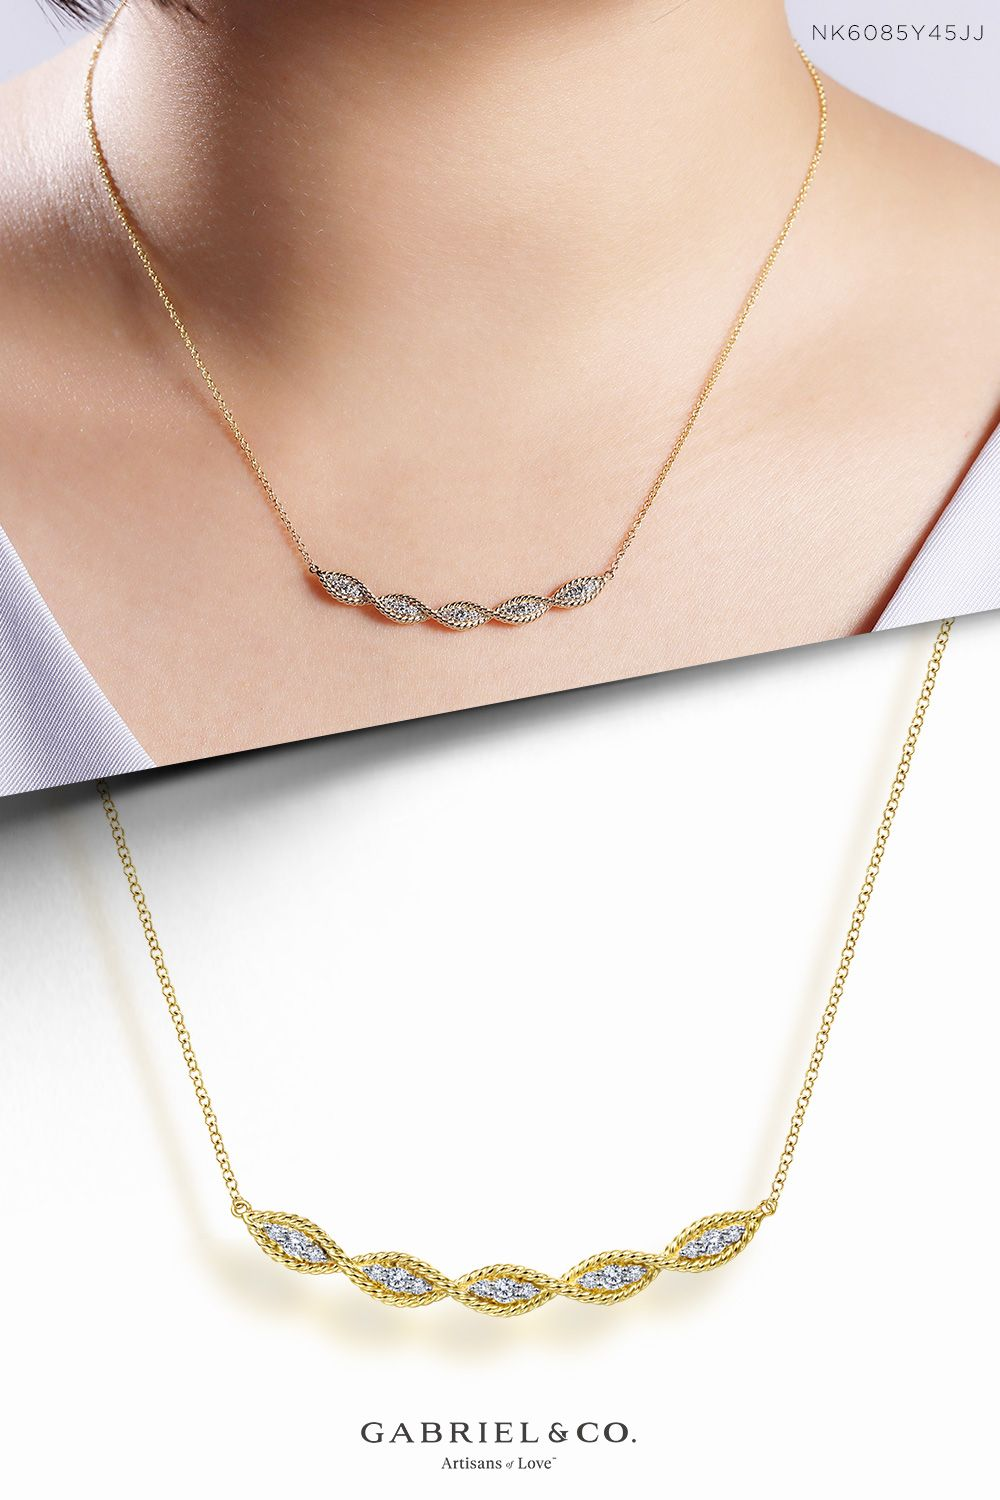 14k Yellow Gold Twisted Rope Curved Diamond Bar Necklace In 2021 Bar Necklace Diamond Bar Necklace Gold Bar Necklace